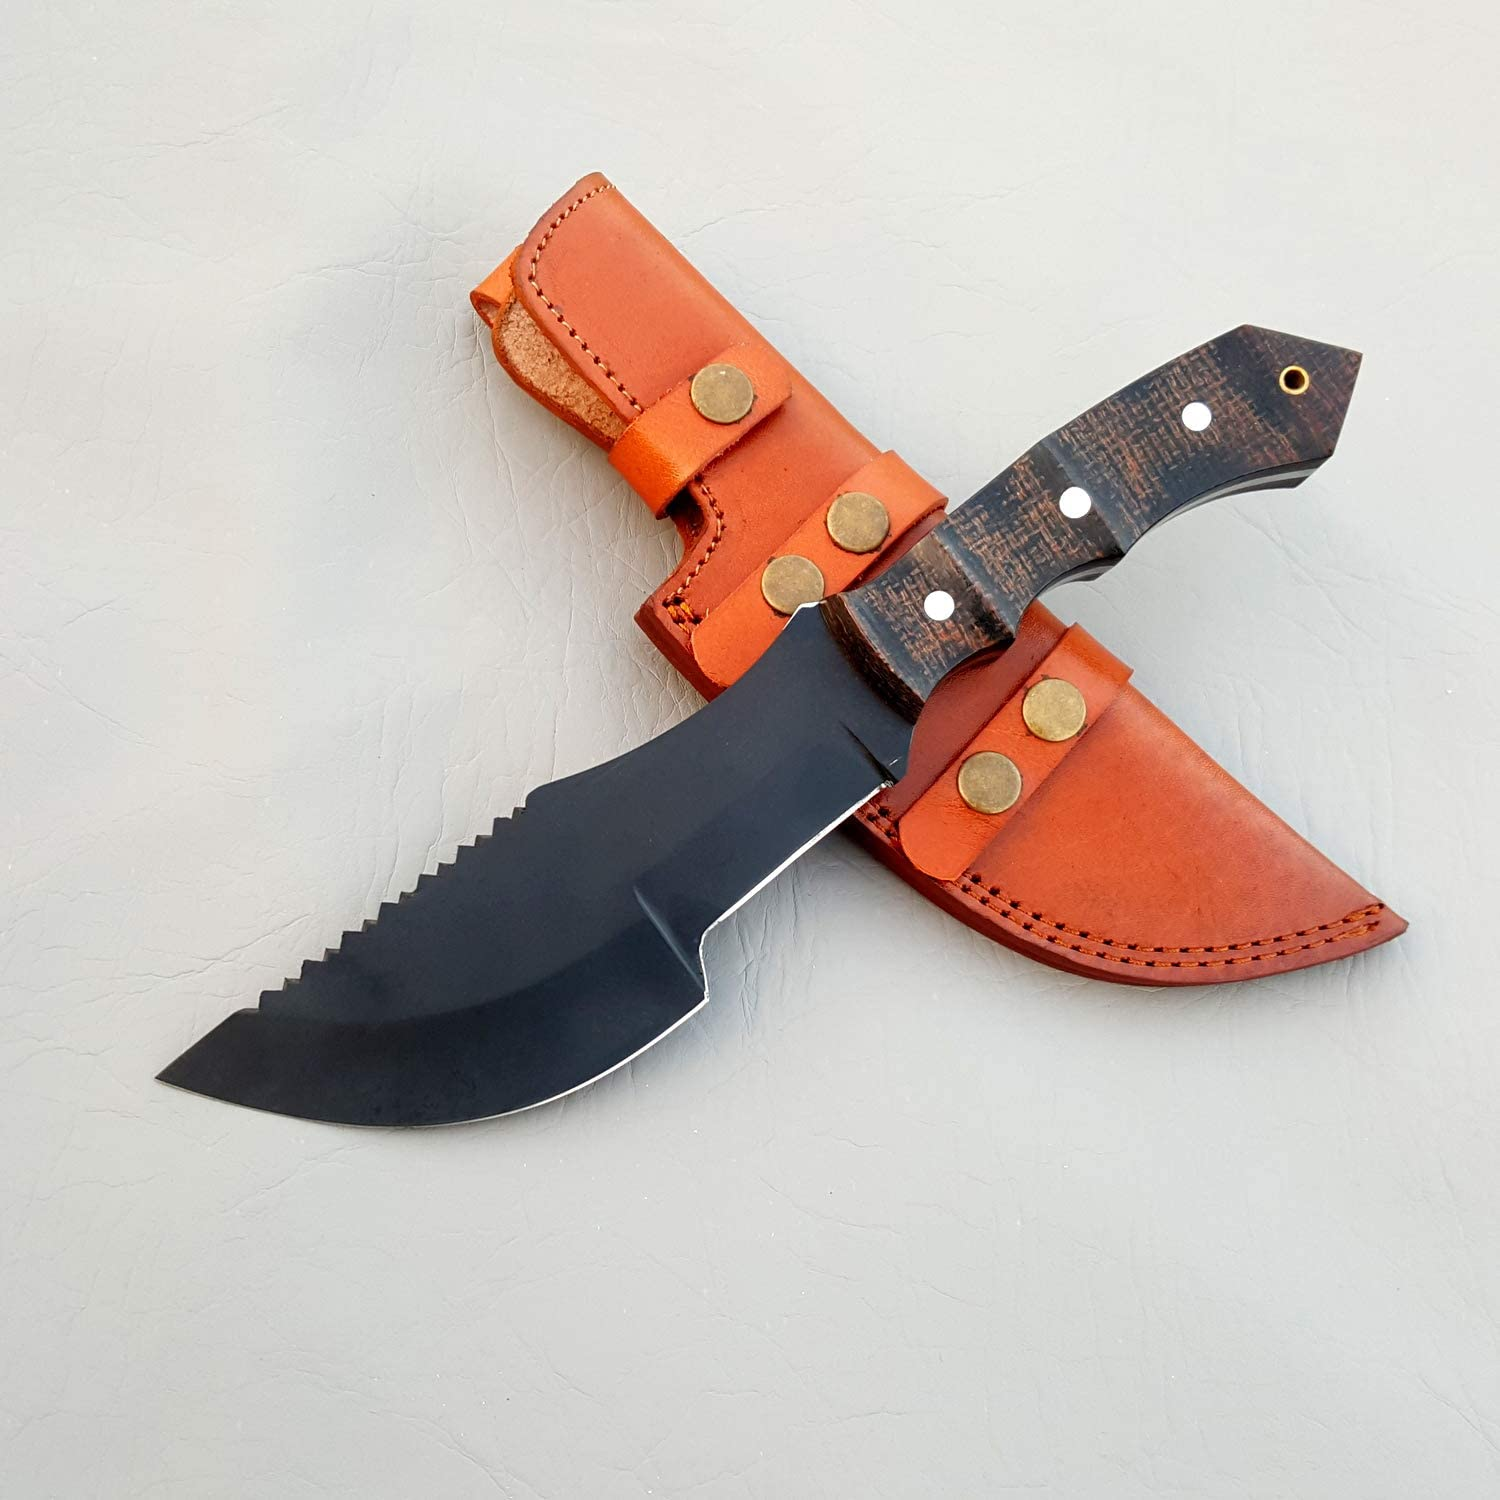 JNR Traders Handmade Carbon Steel Tracker Tactical Knife Powder Coated Swiss Saw Spine 13 Inches VK0047